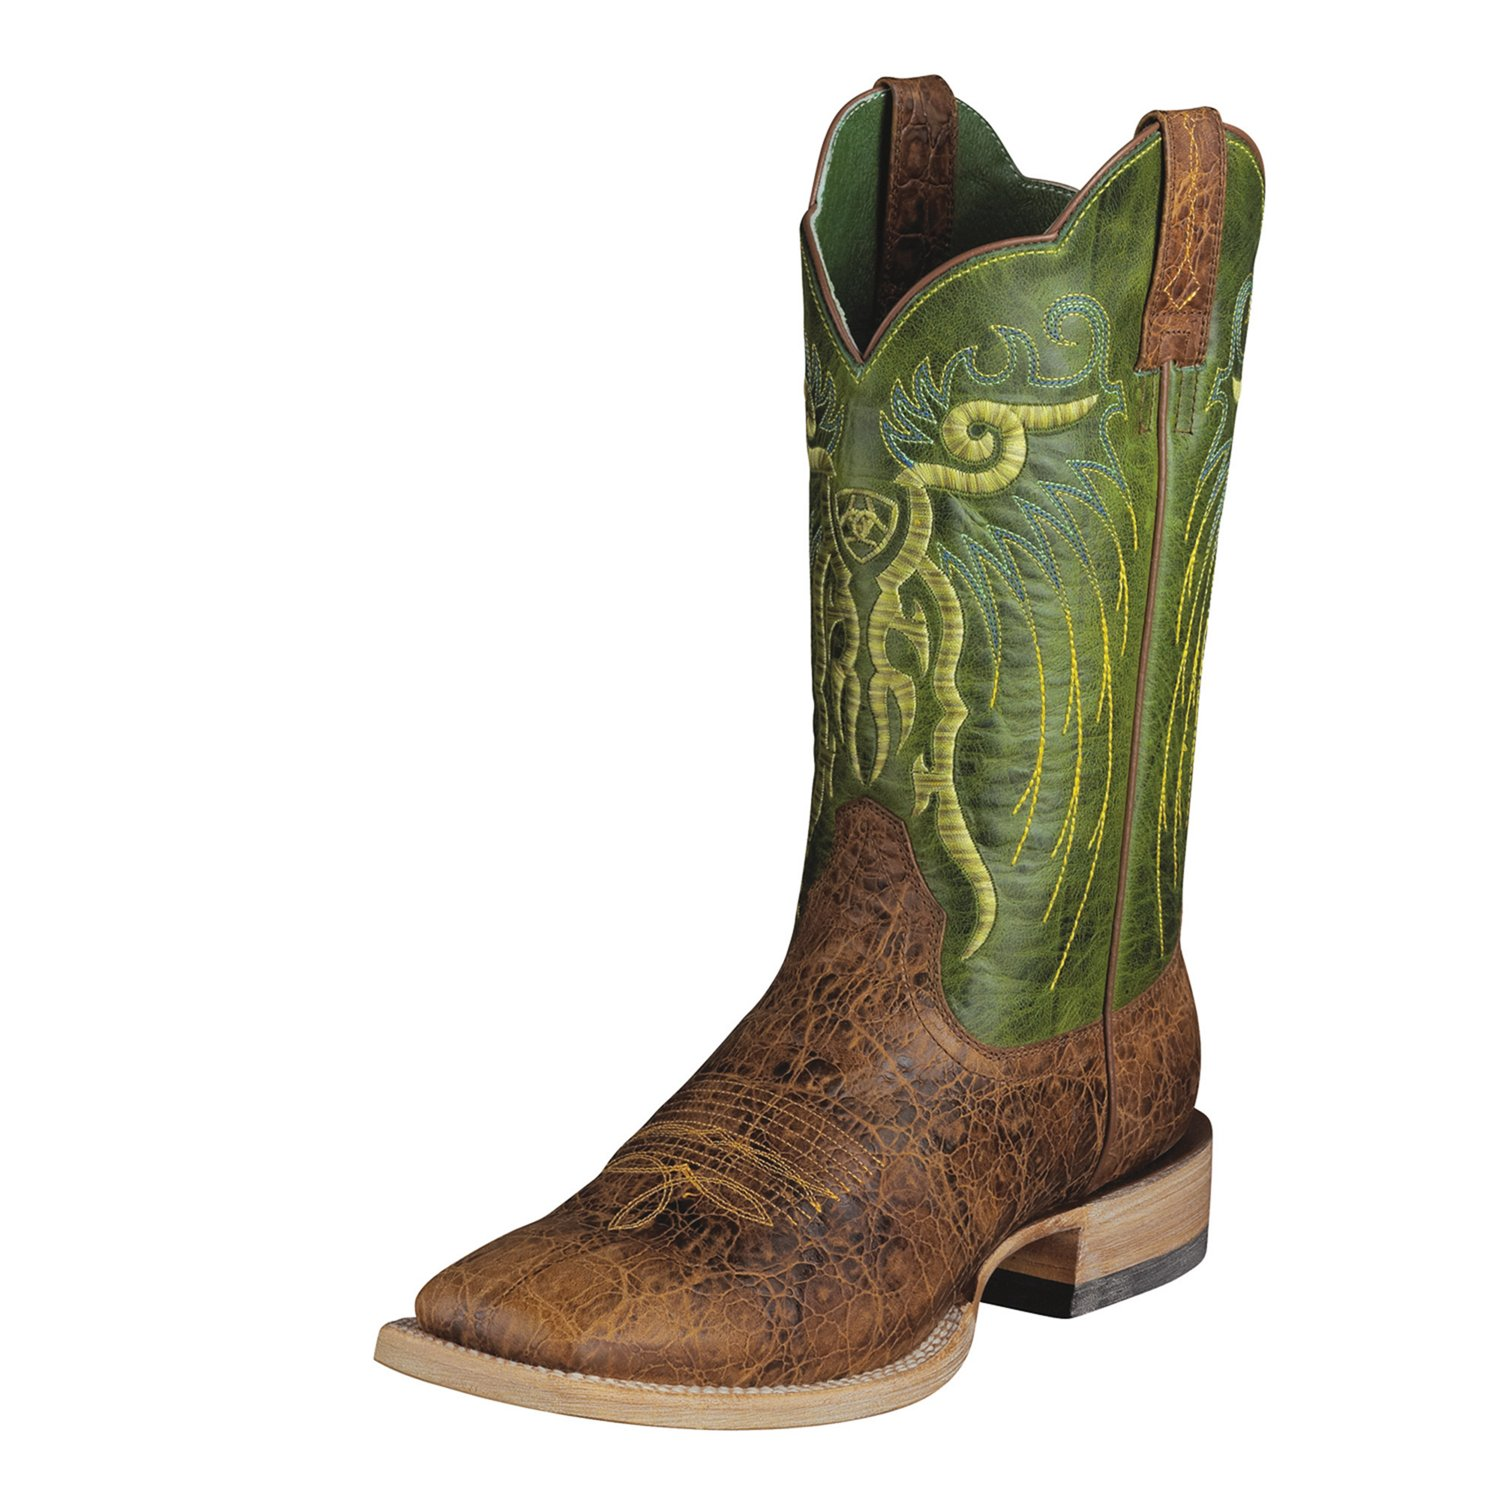 Ariat Men's Mesteno Boots - view number 1